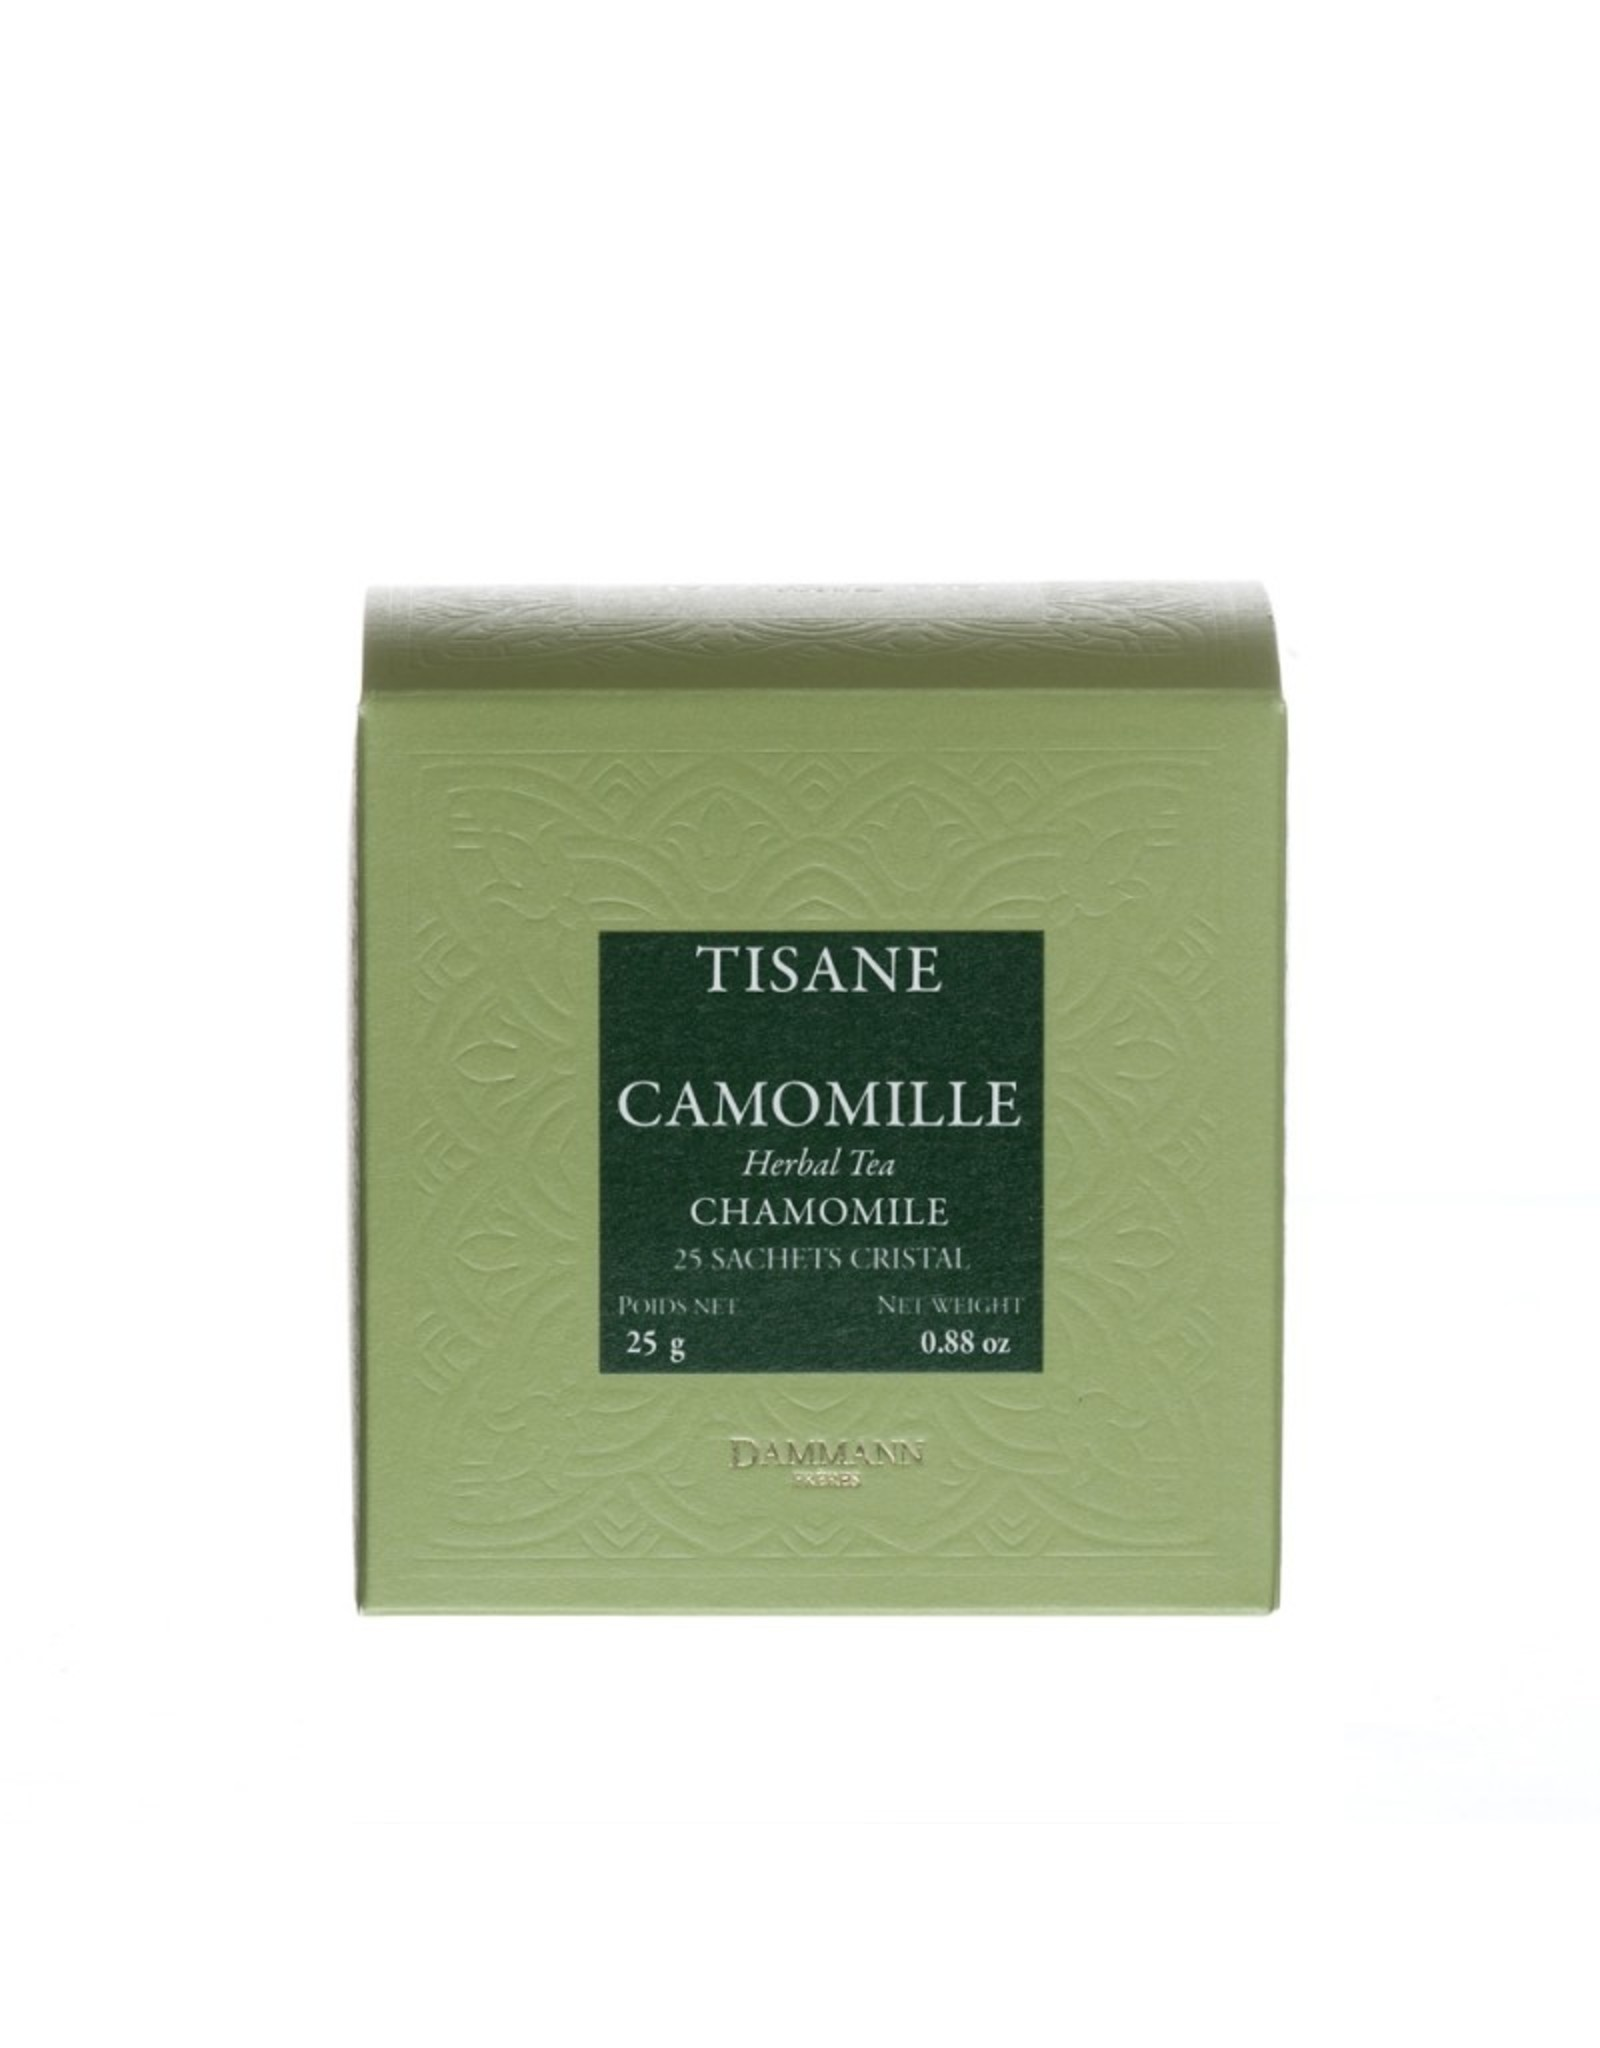 Dammann 'Camomille' Herbal tea